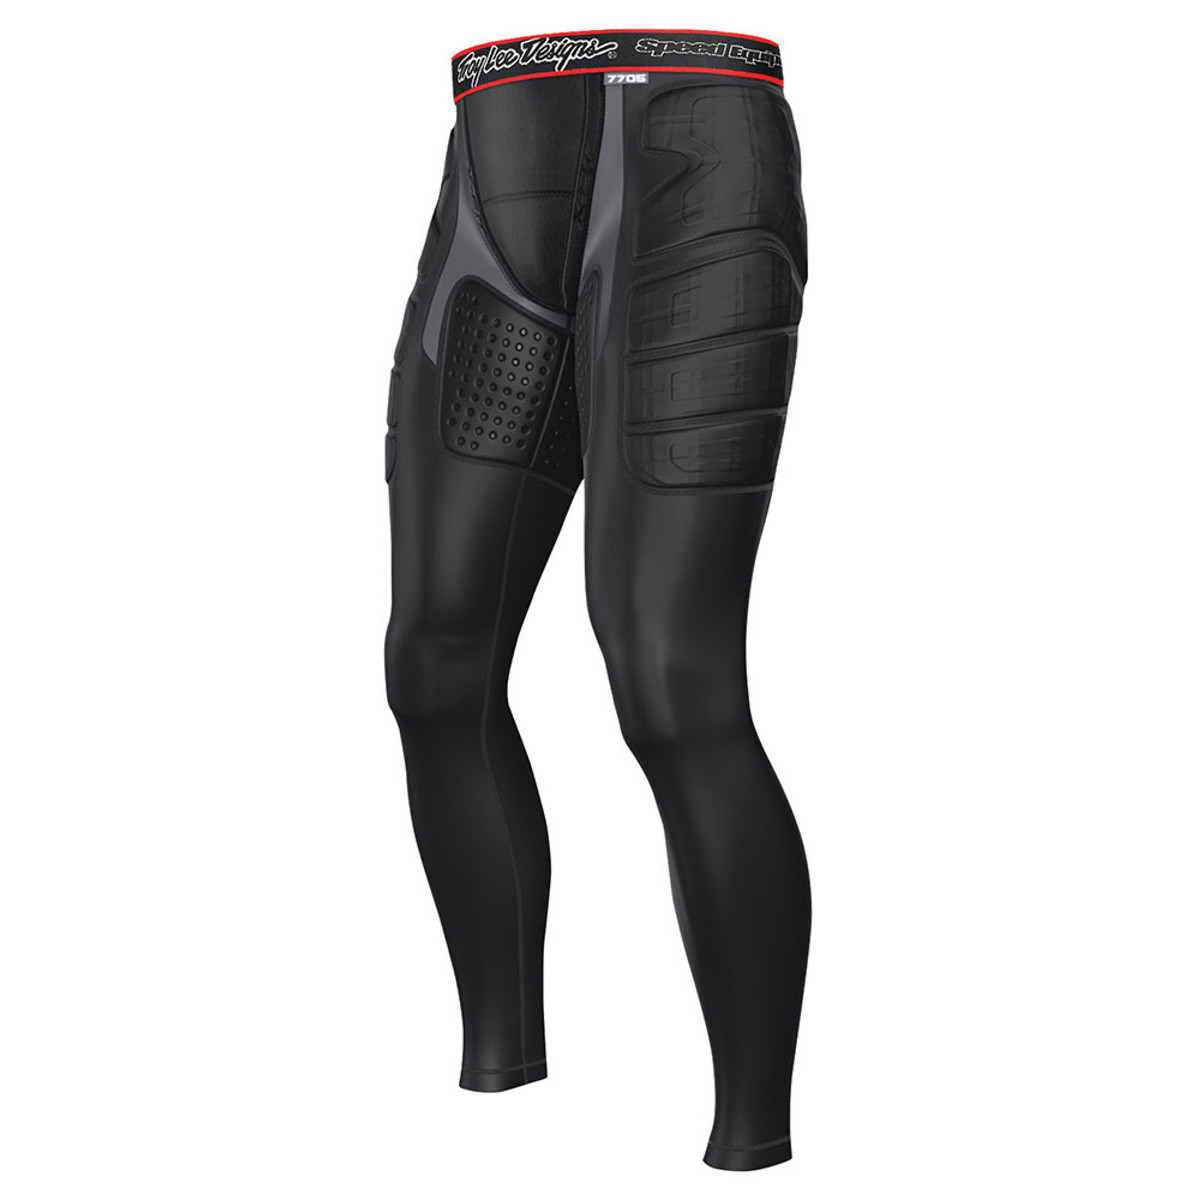 Troy Lee Designs 7705 Ultra Protective Pant  TLD 7705 Ultra Protective Pant